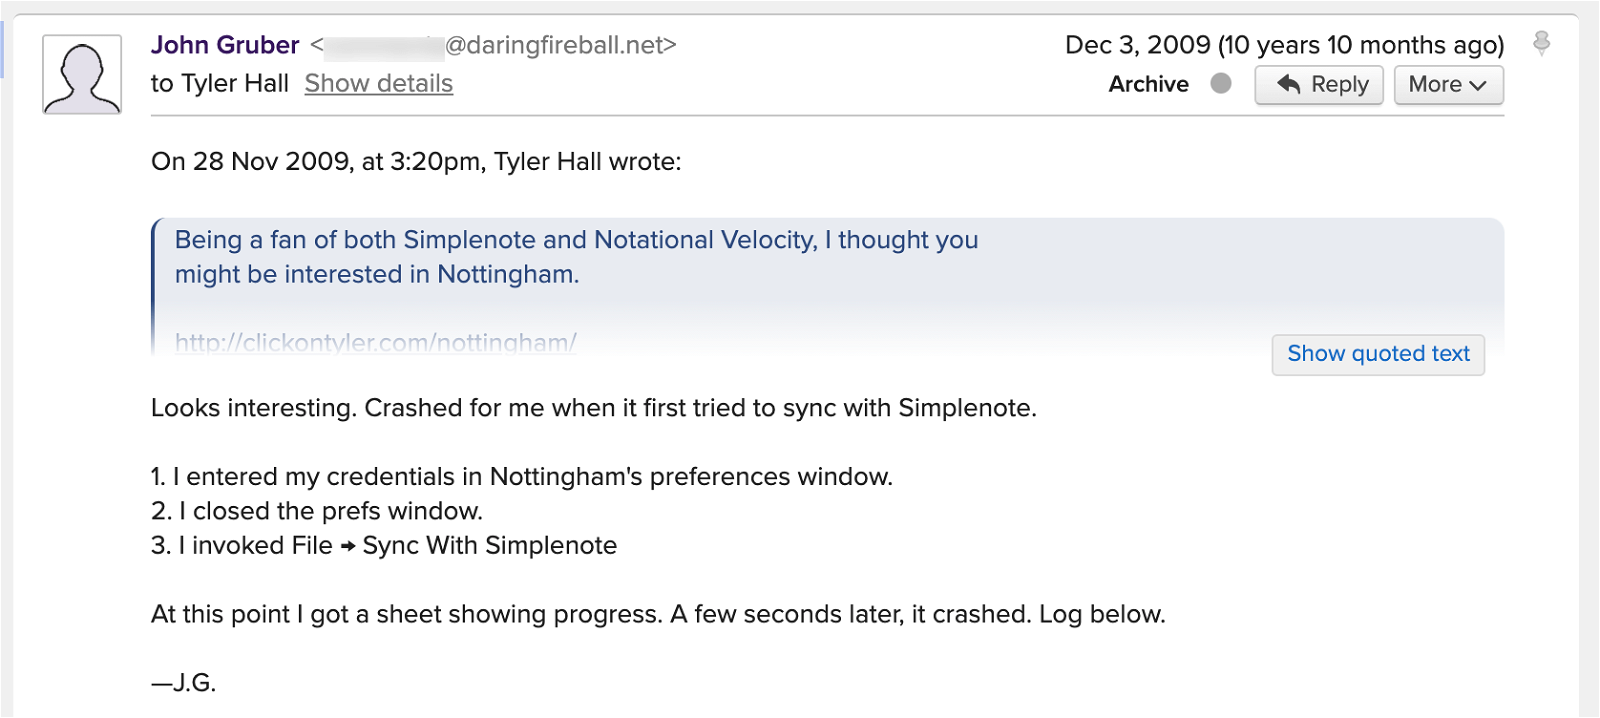 Screenshot 1 of email with John Gruber